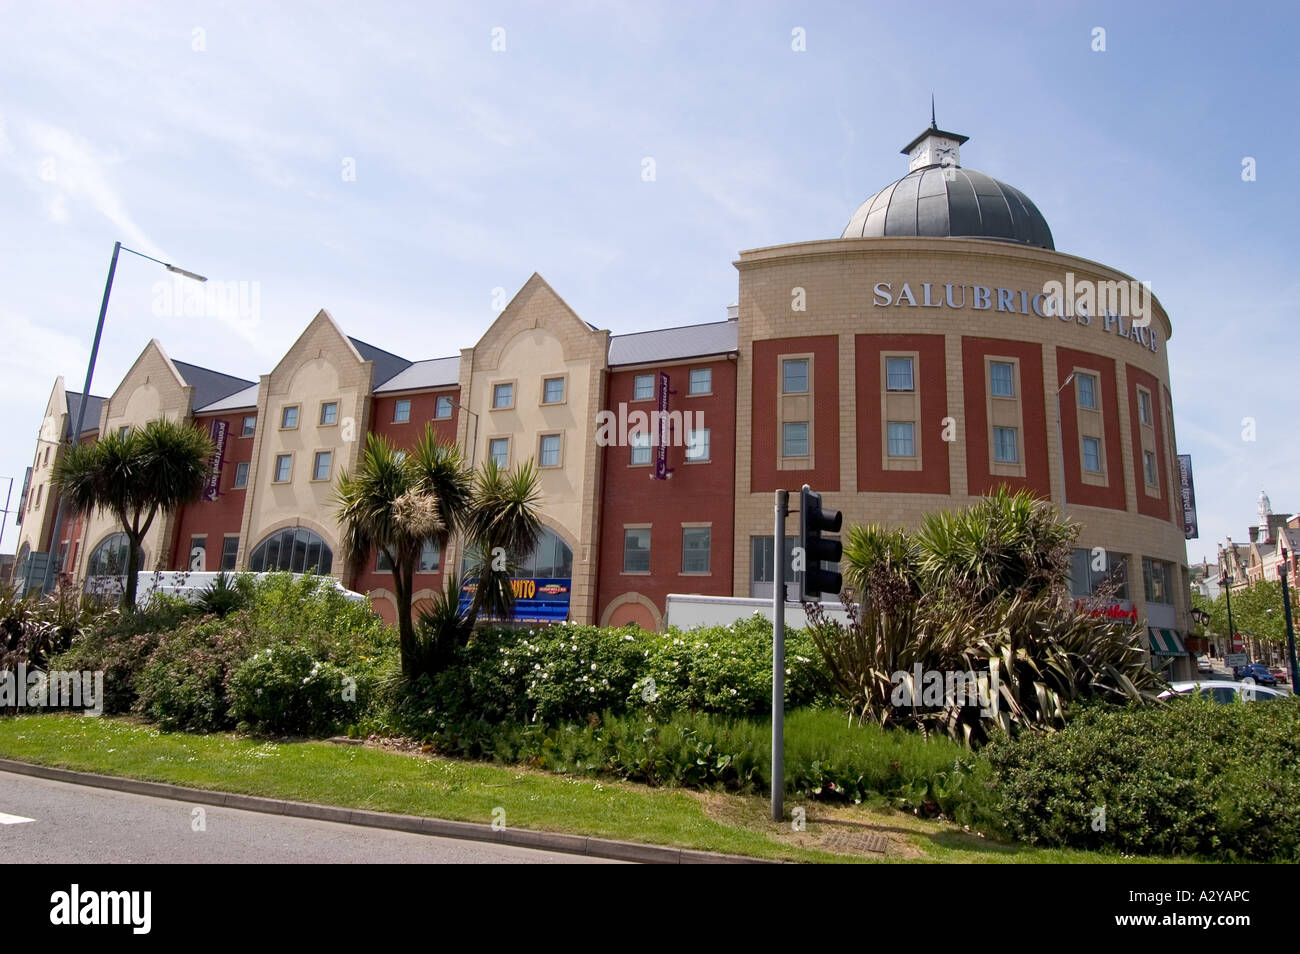 Salubrious Place Restaurant and Entertainment Development Swansea South Wales - Stock Image